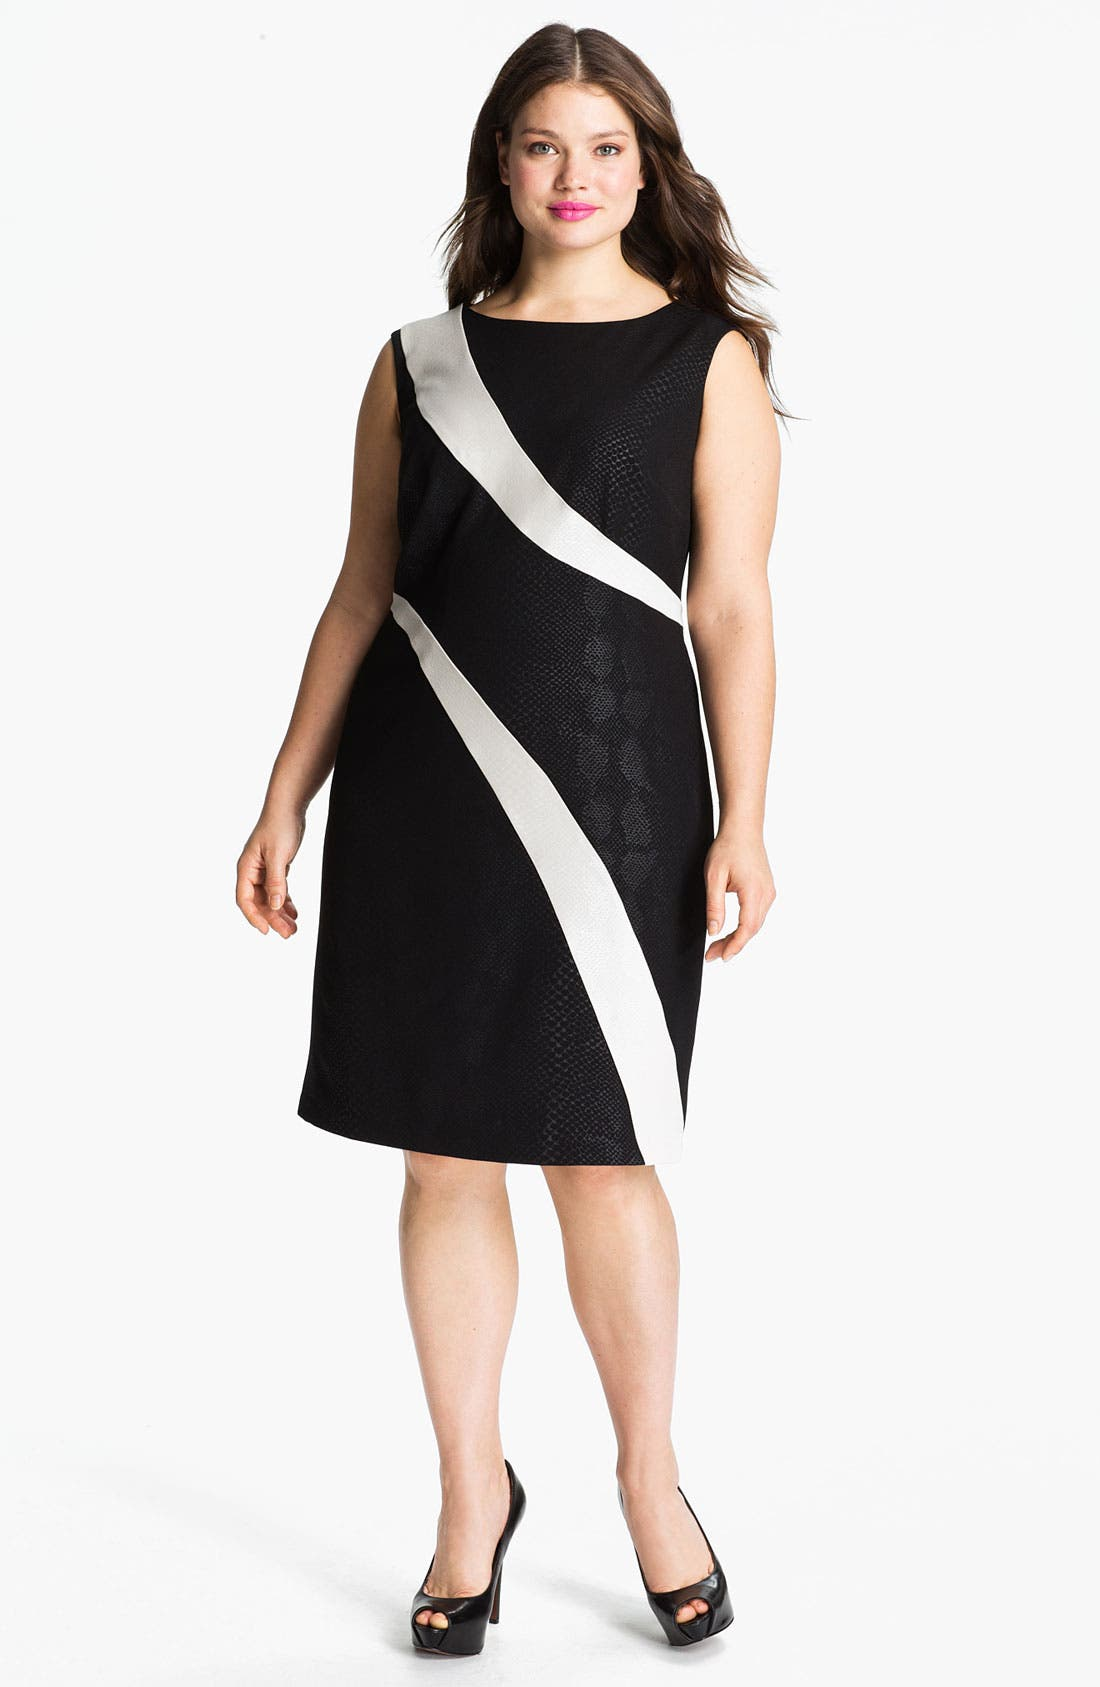 Alternate Image 1 Selected - Adrianna Papell Contrast Panel Snakeskin Pattern Sheath Dress (Plus)